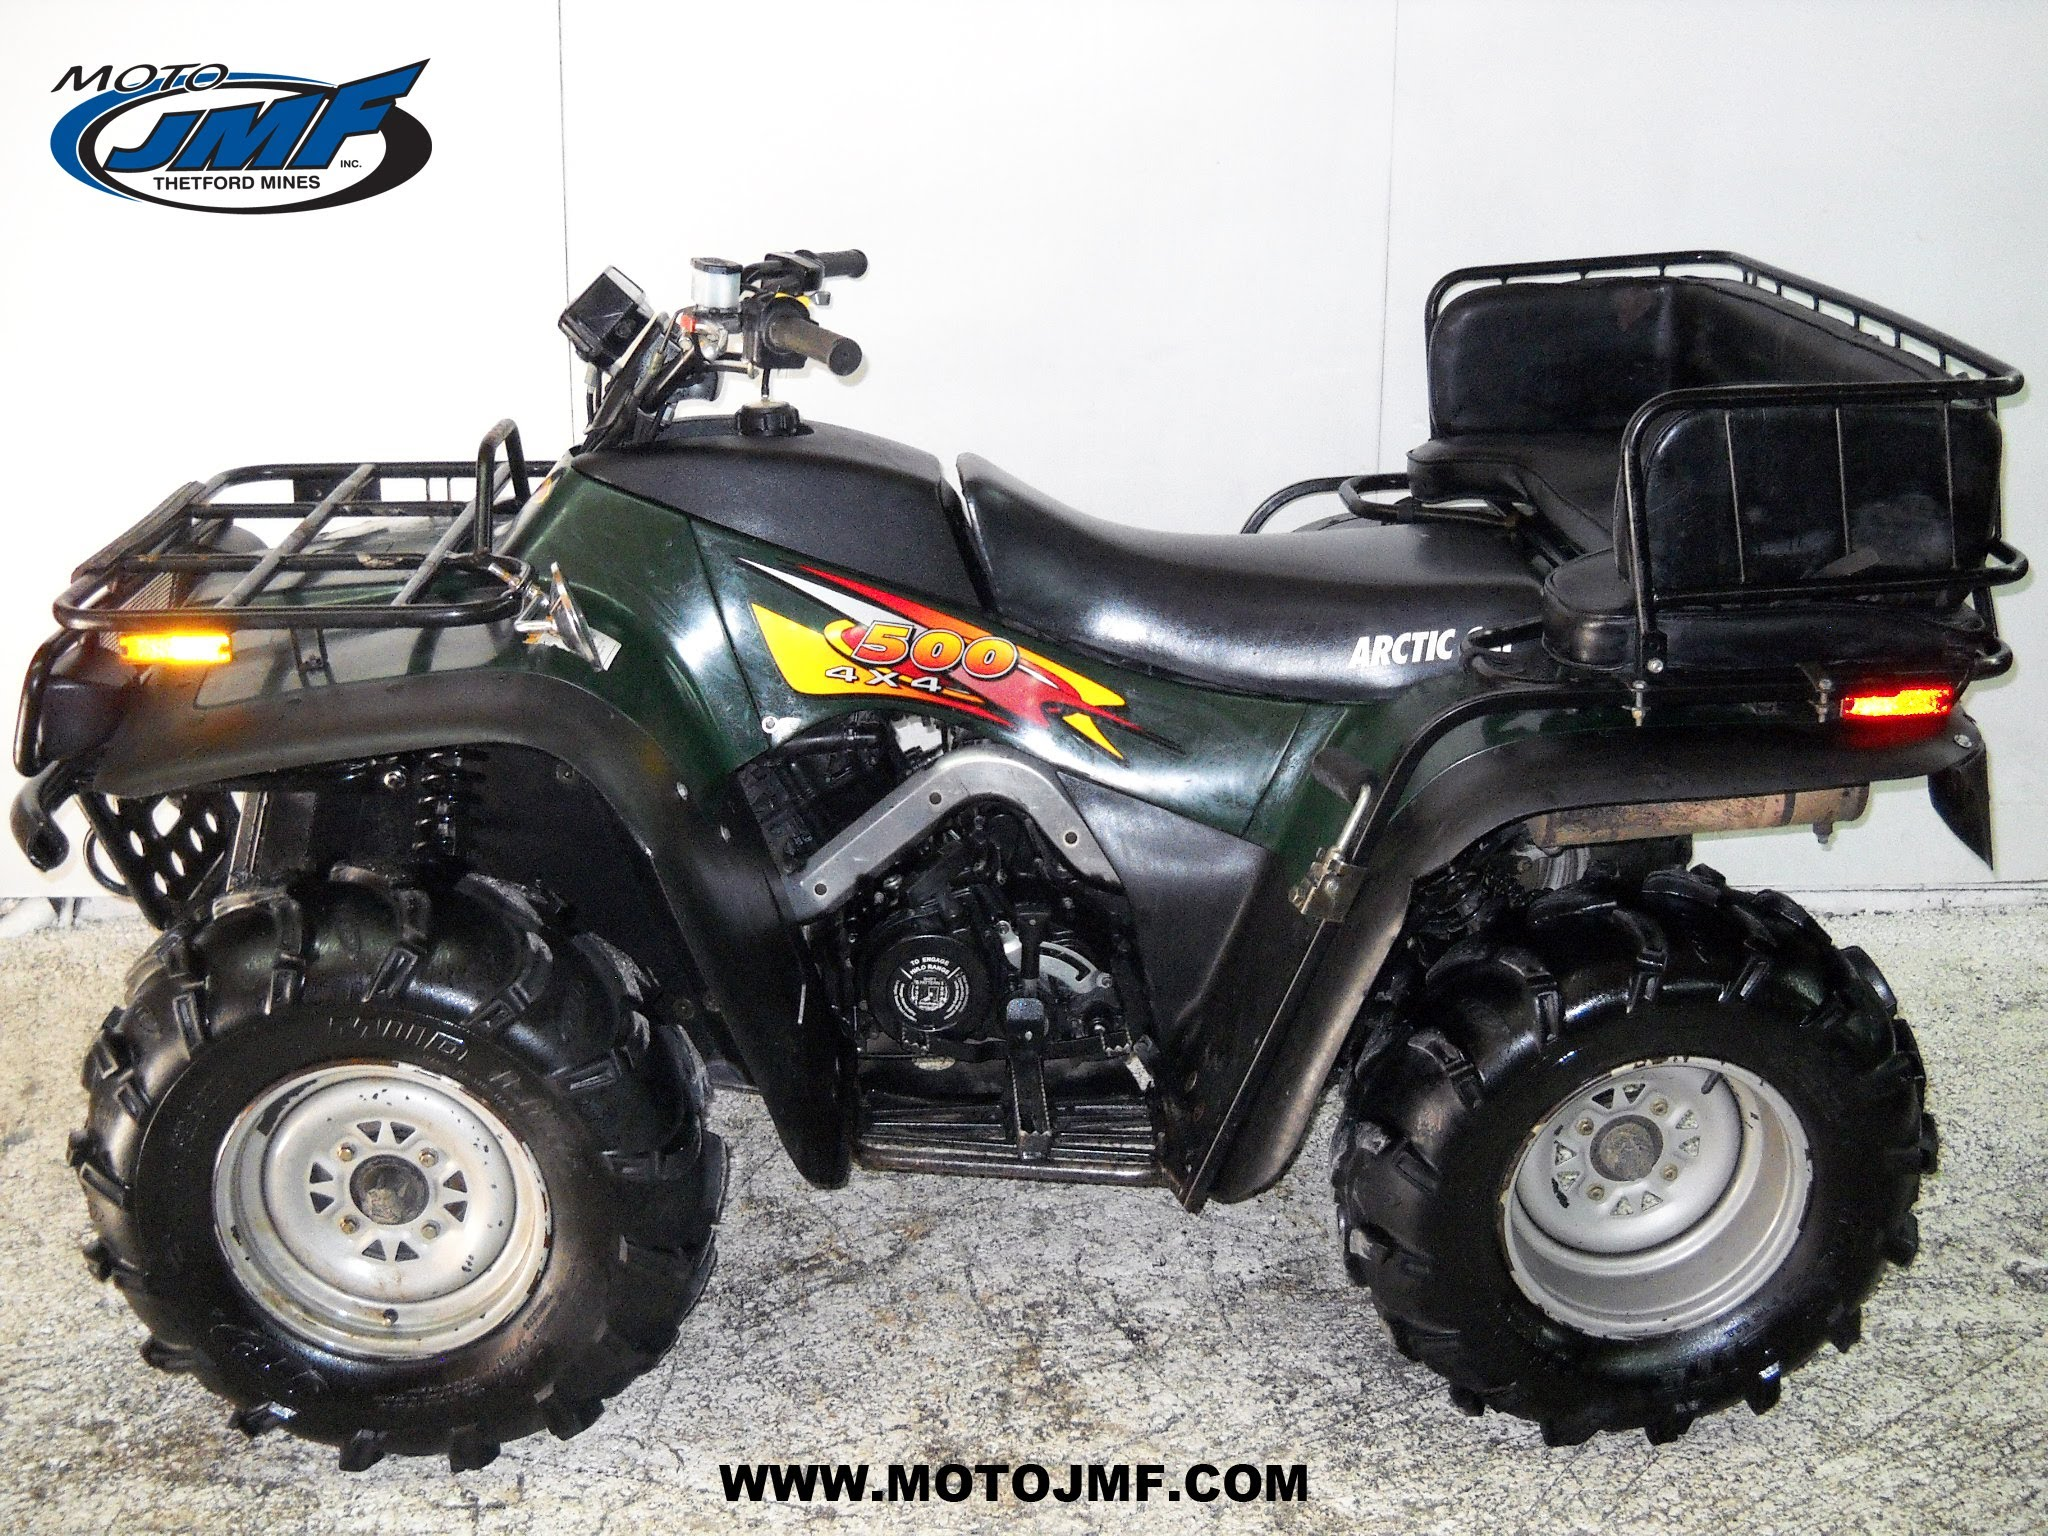 1998 Arctic Cat 400 Atv Wiring Diagram Electrical Diagrams 600 Efi 300 Wire Data Voltage Regulator